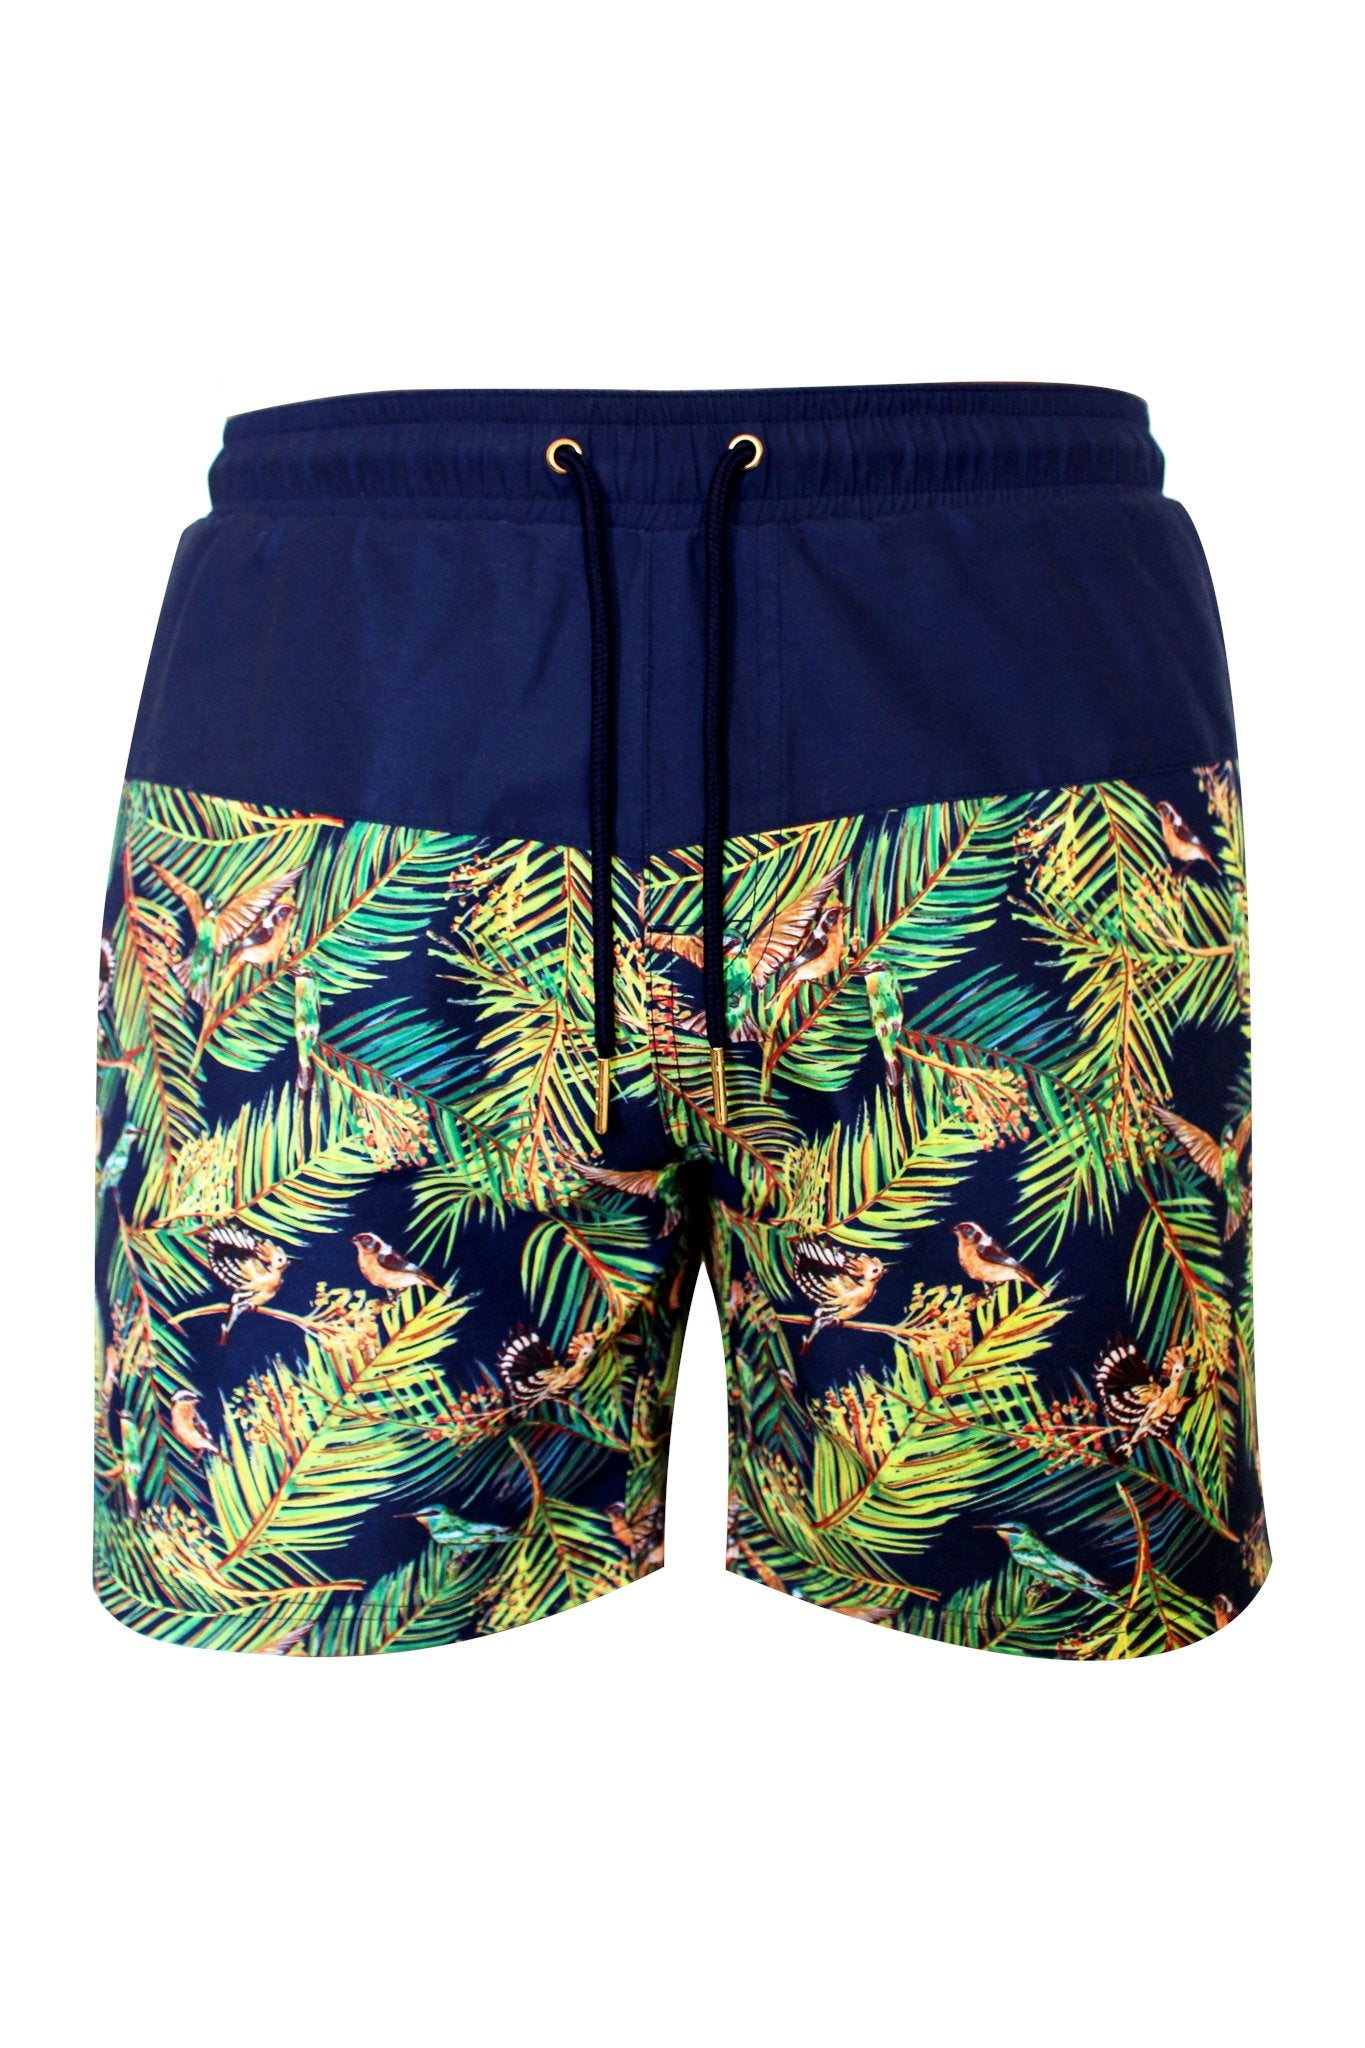 Sahara Bird Swim Trunks -  by Mer Culture Swimwear Hong Kong